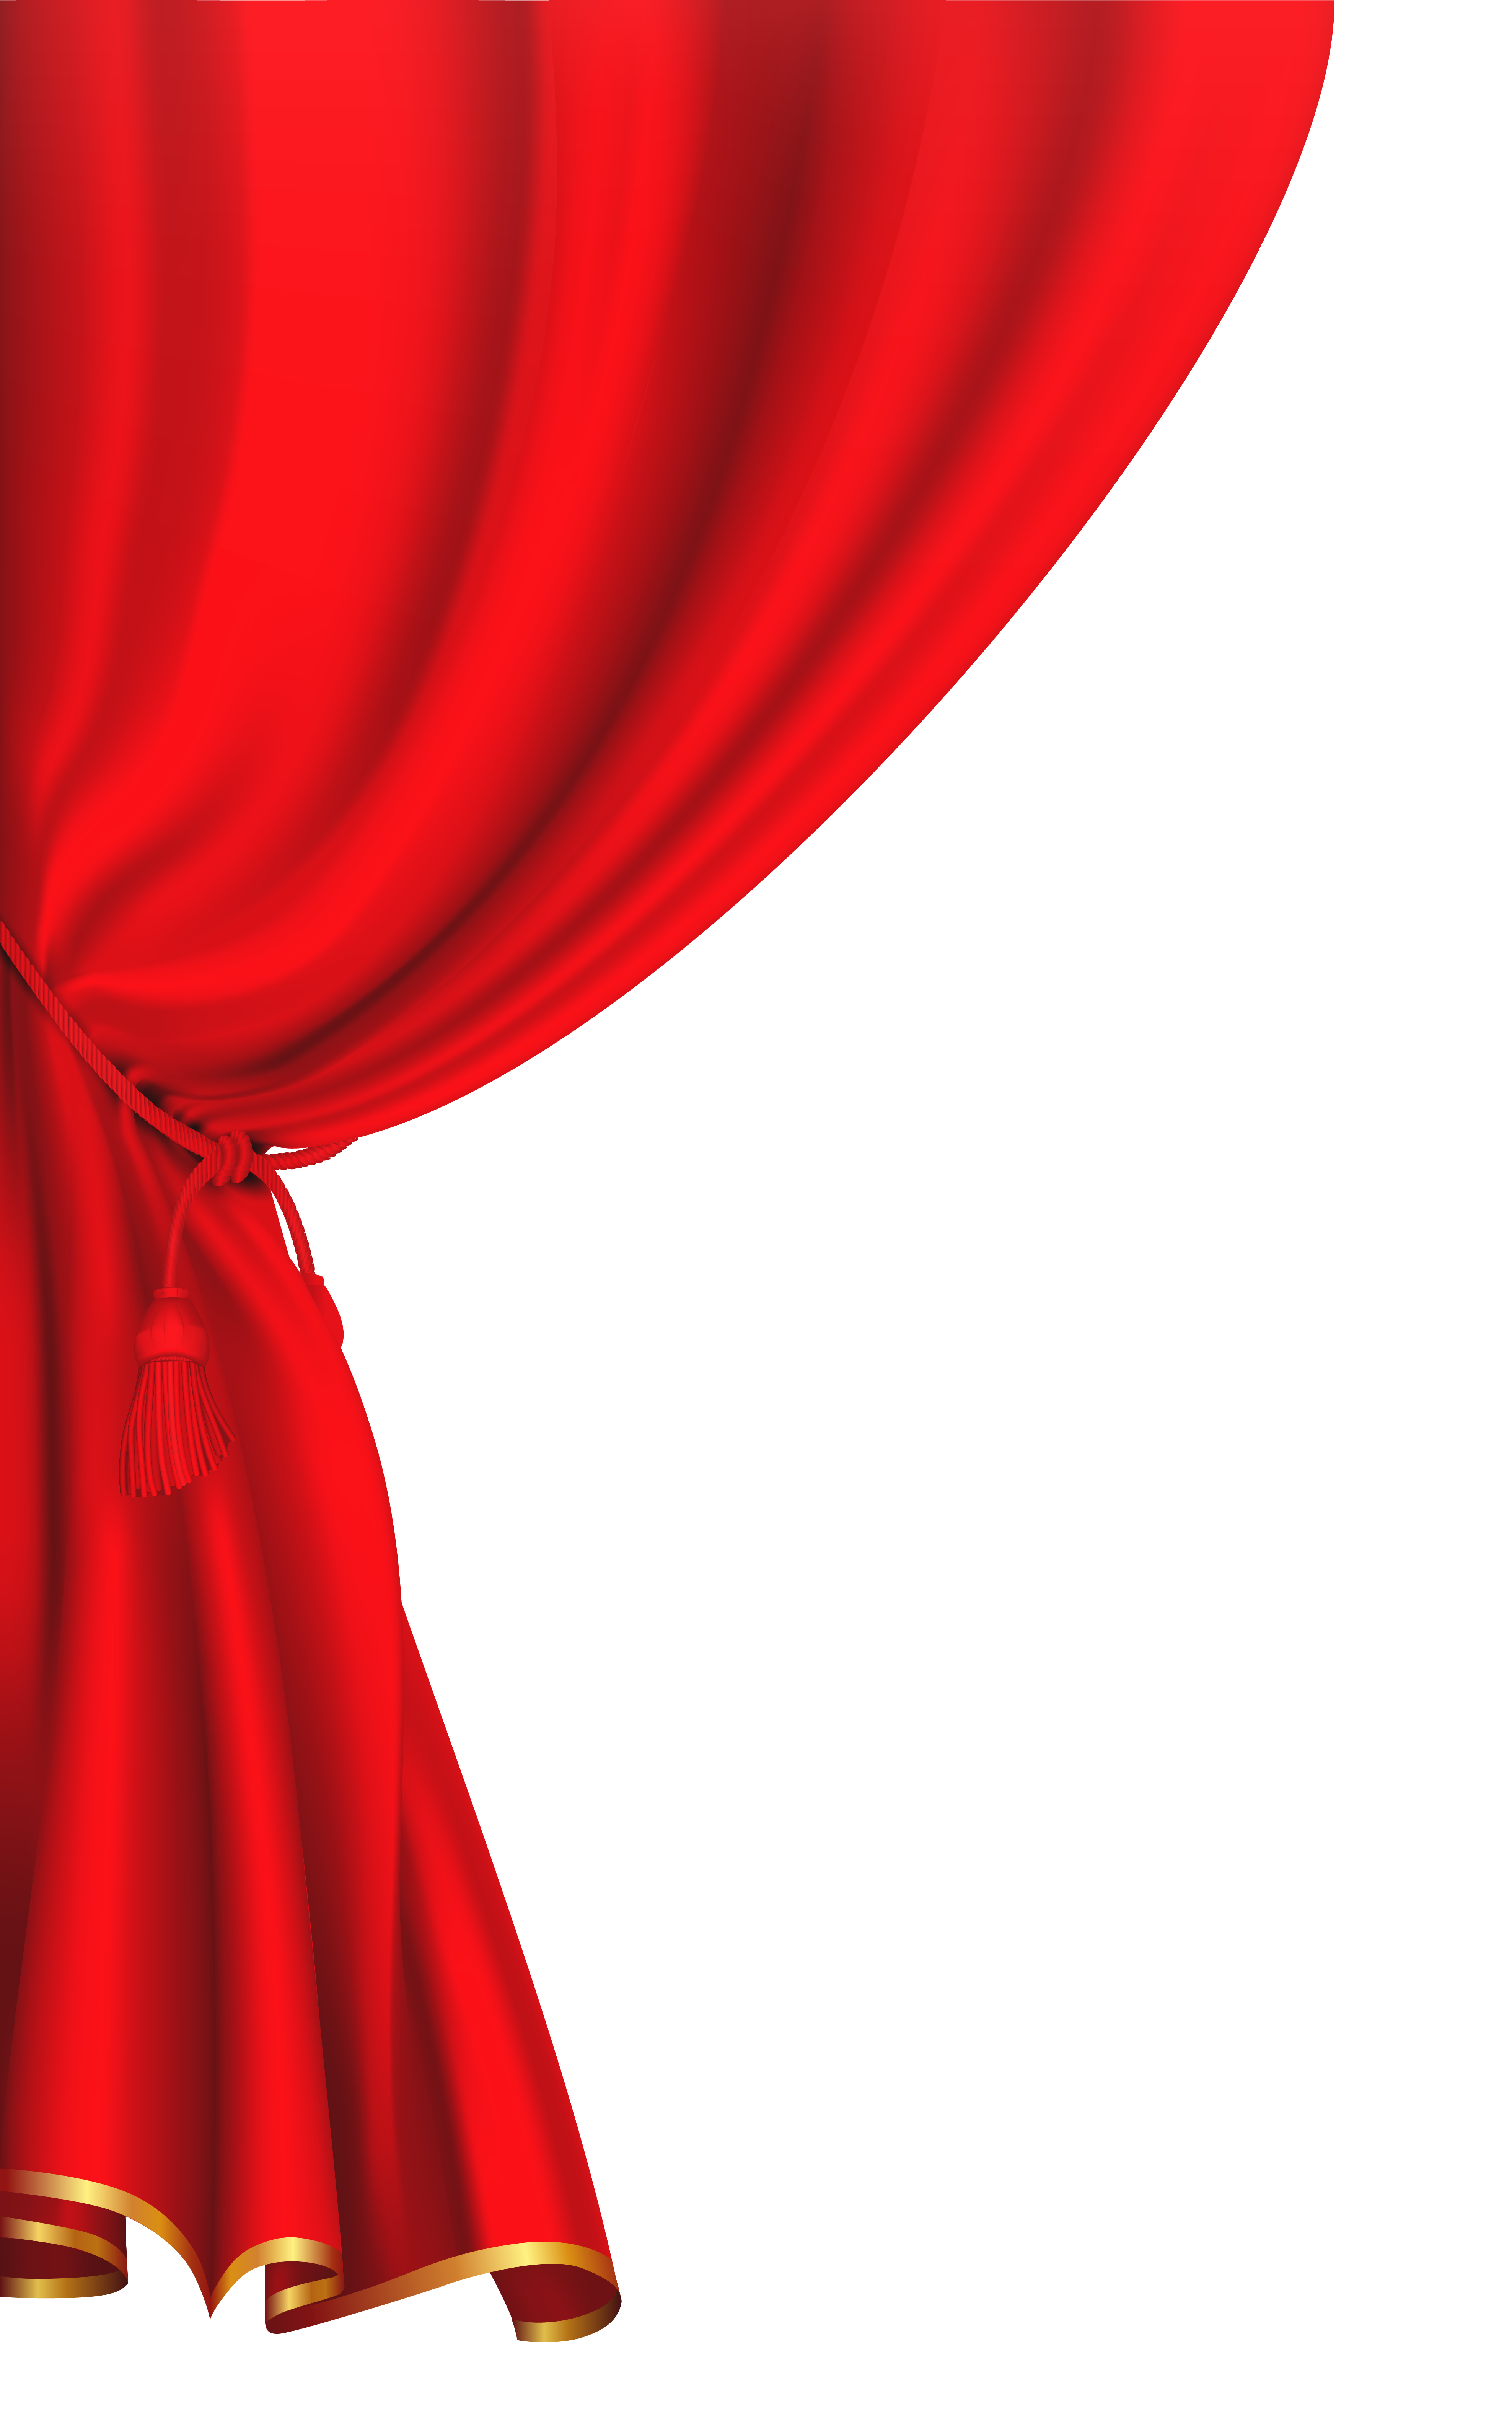 3952x6307 Red Curtain Clipart Image Png2 Pinterest Red curtains